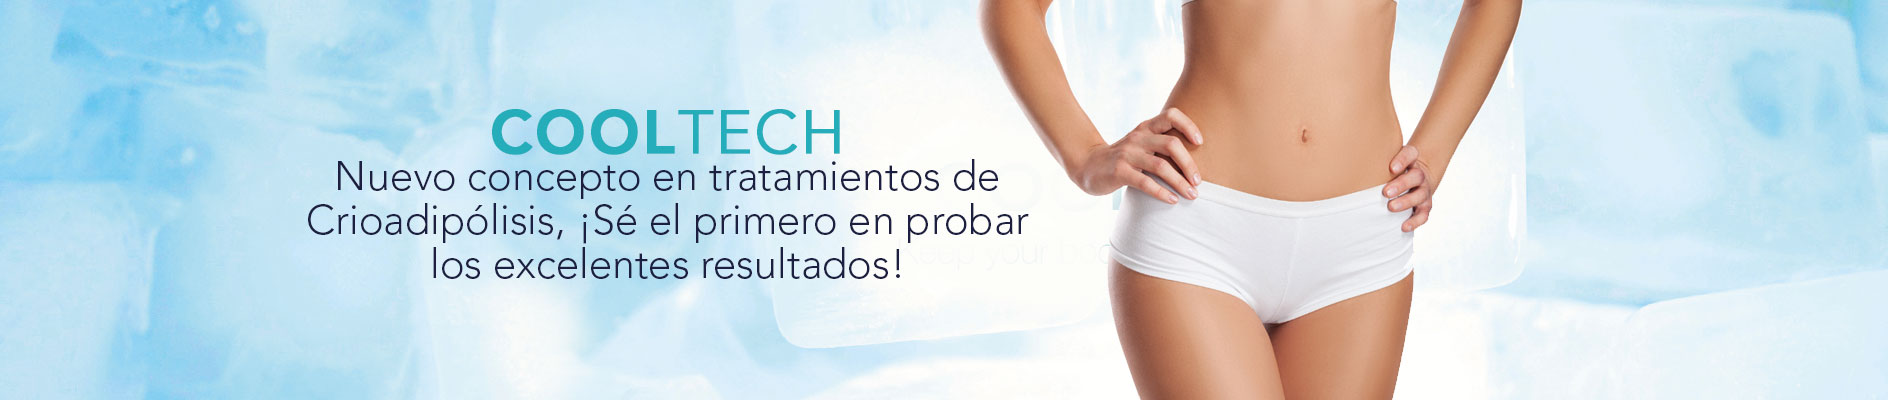 COOLTECH DERMOSALUD